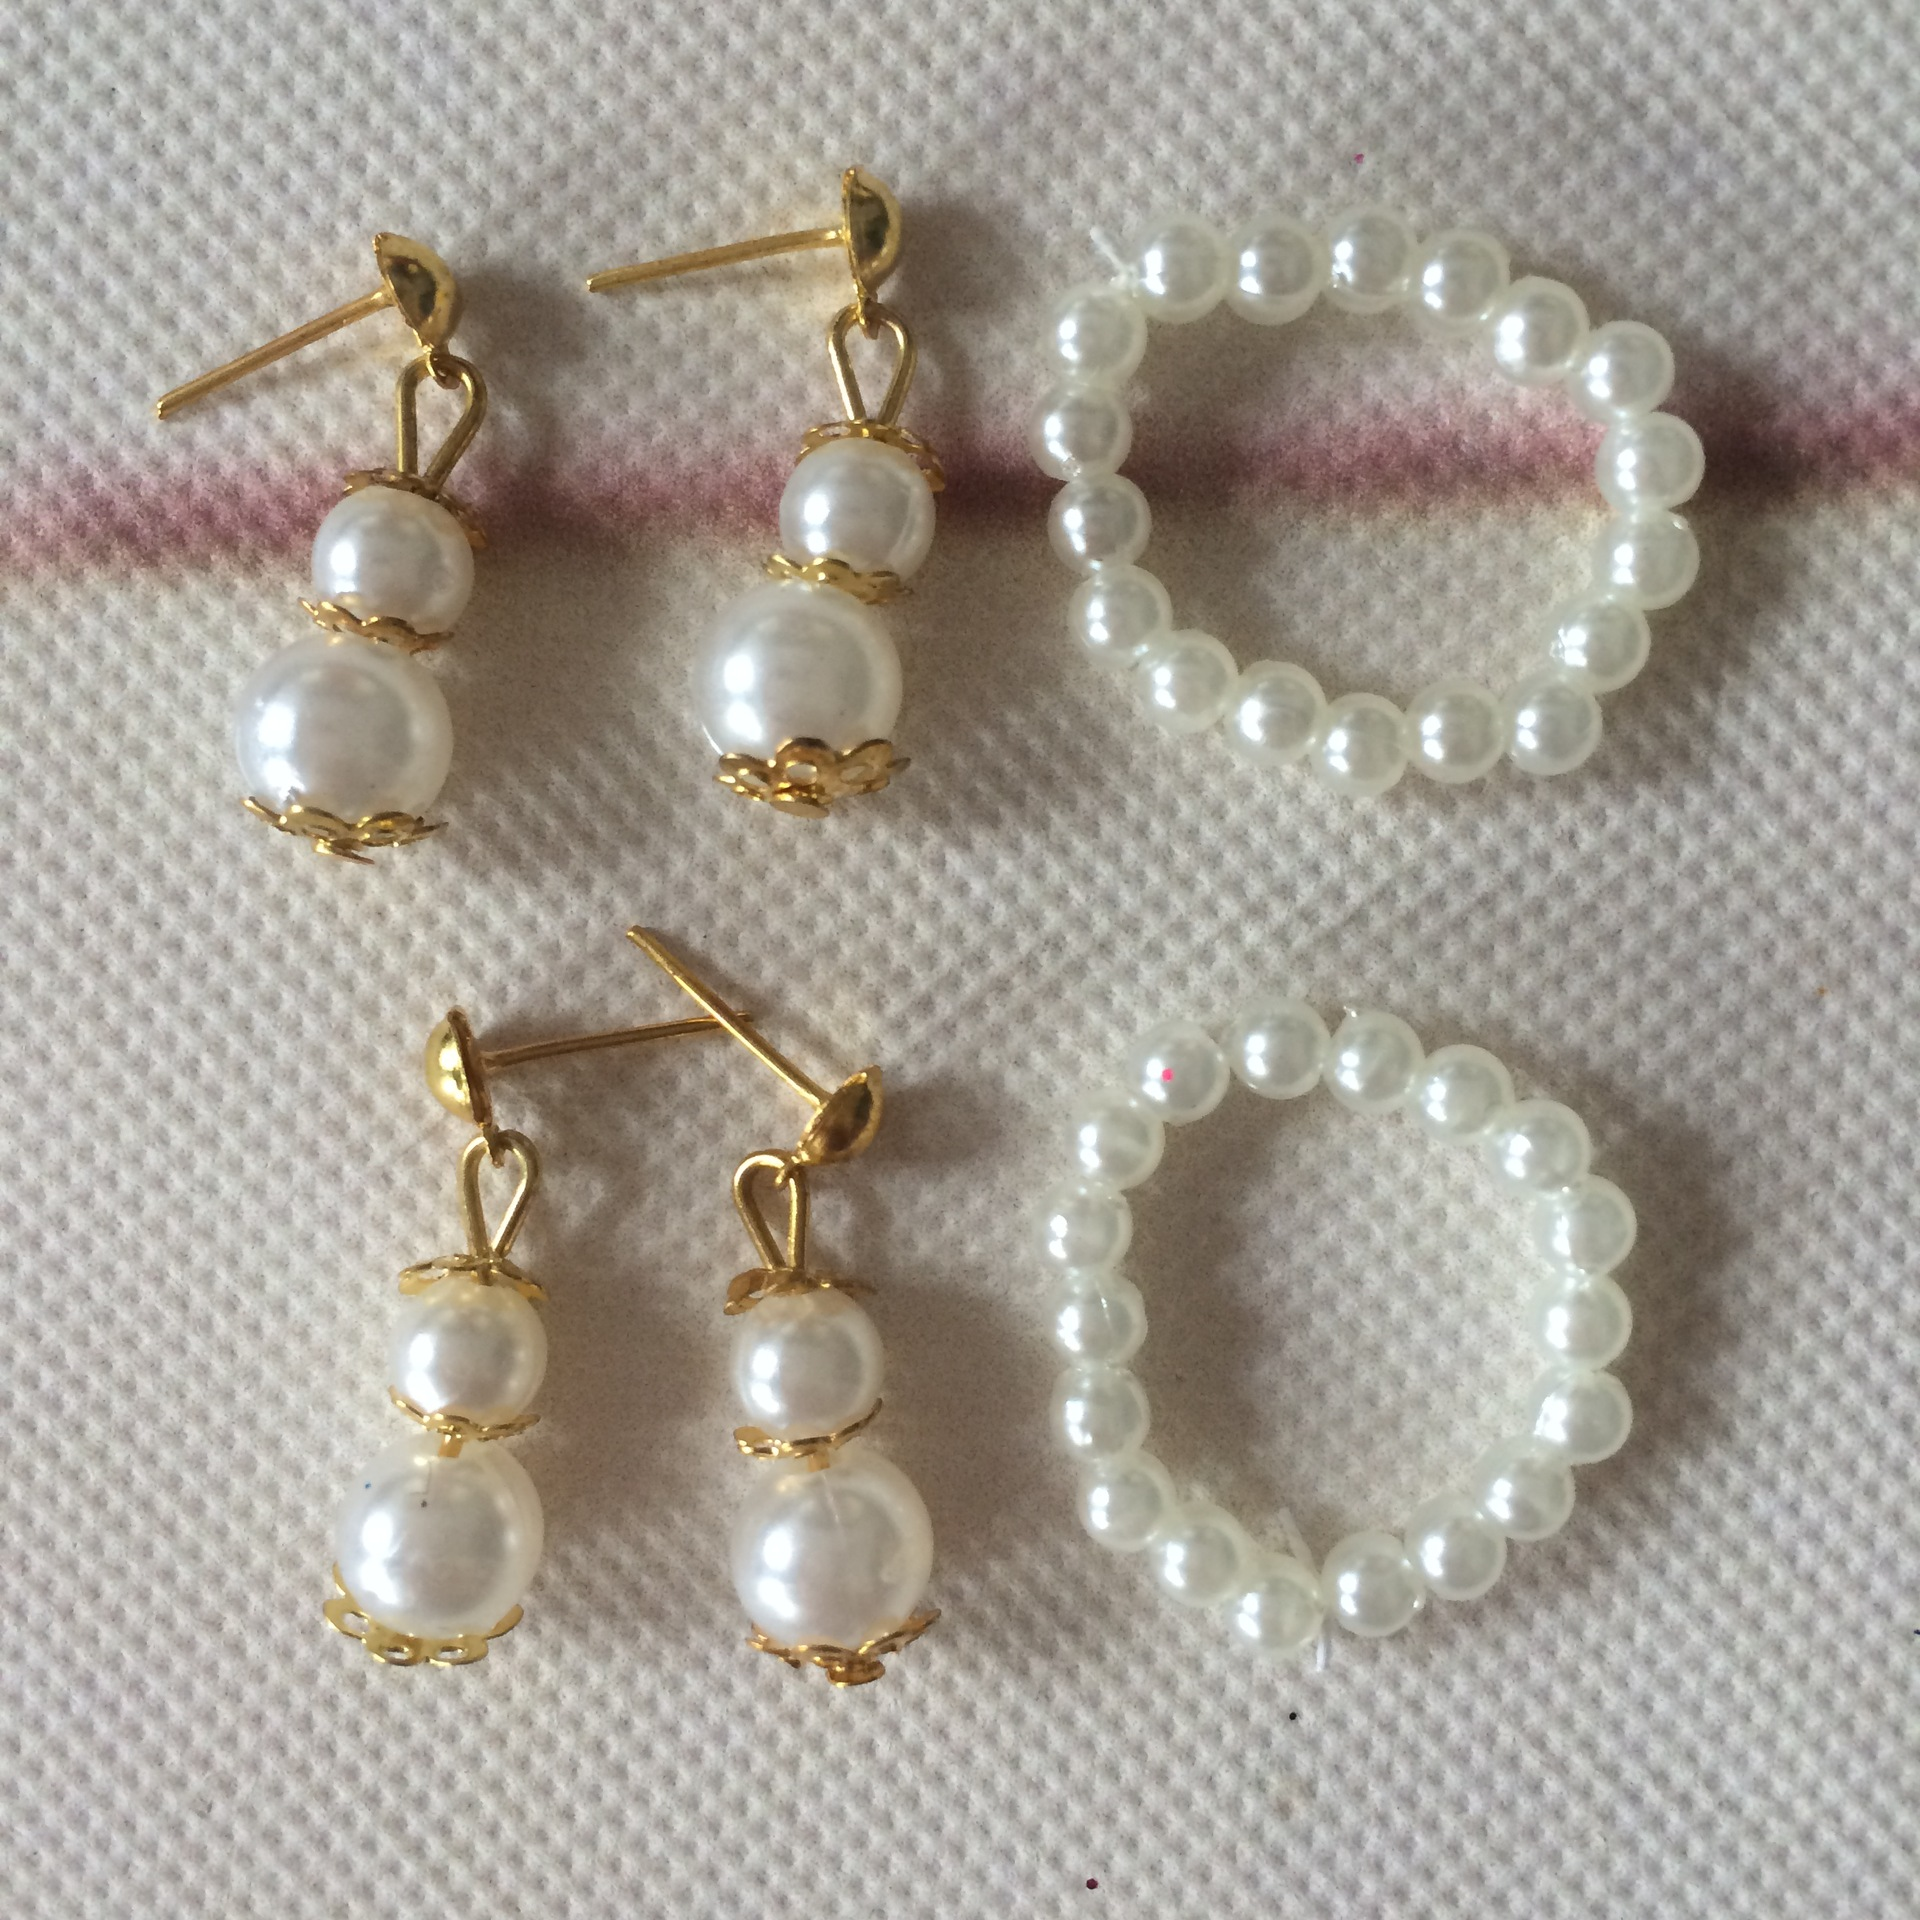 1 Set New Jewelry Pearl Necklace Earrings for Barbie Dolls Plastic